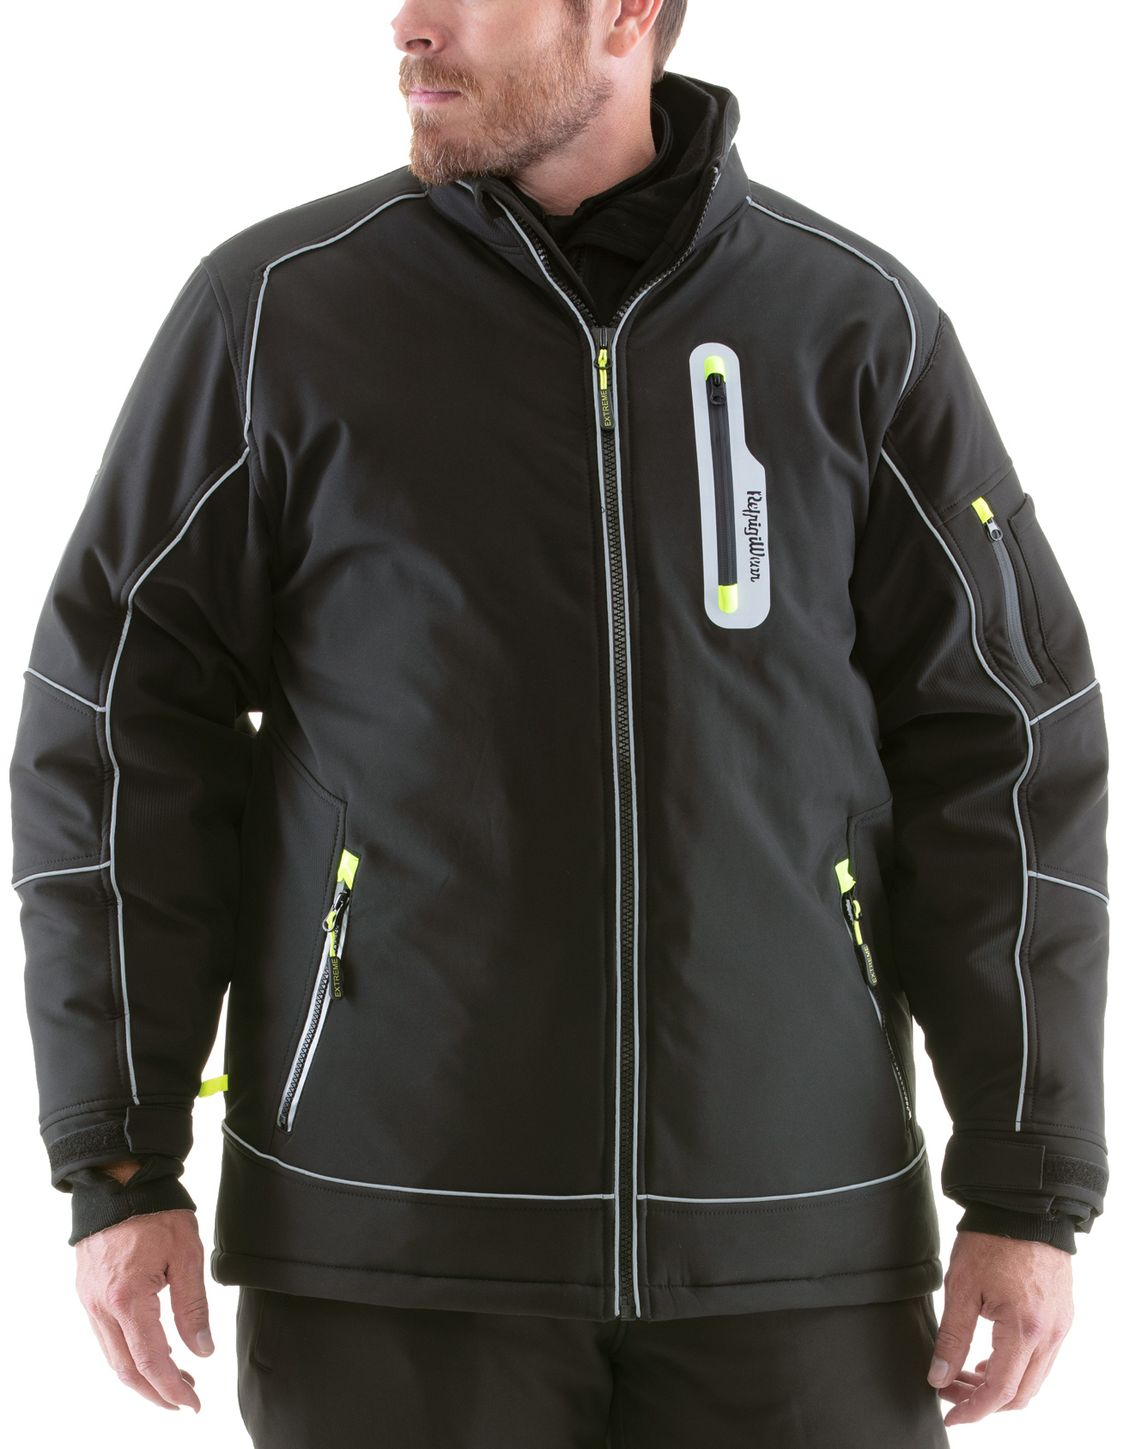 RefrigiWear 0790 Extreme Collection Softshell Jacket Front Example